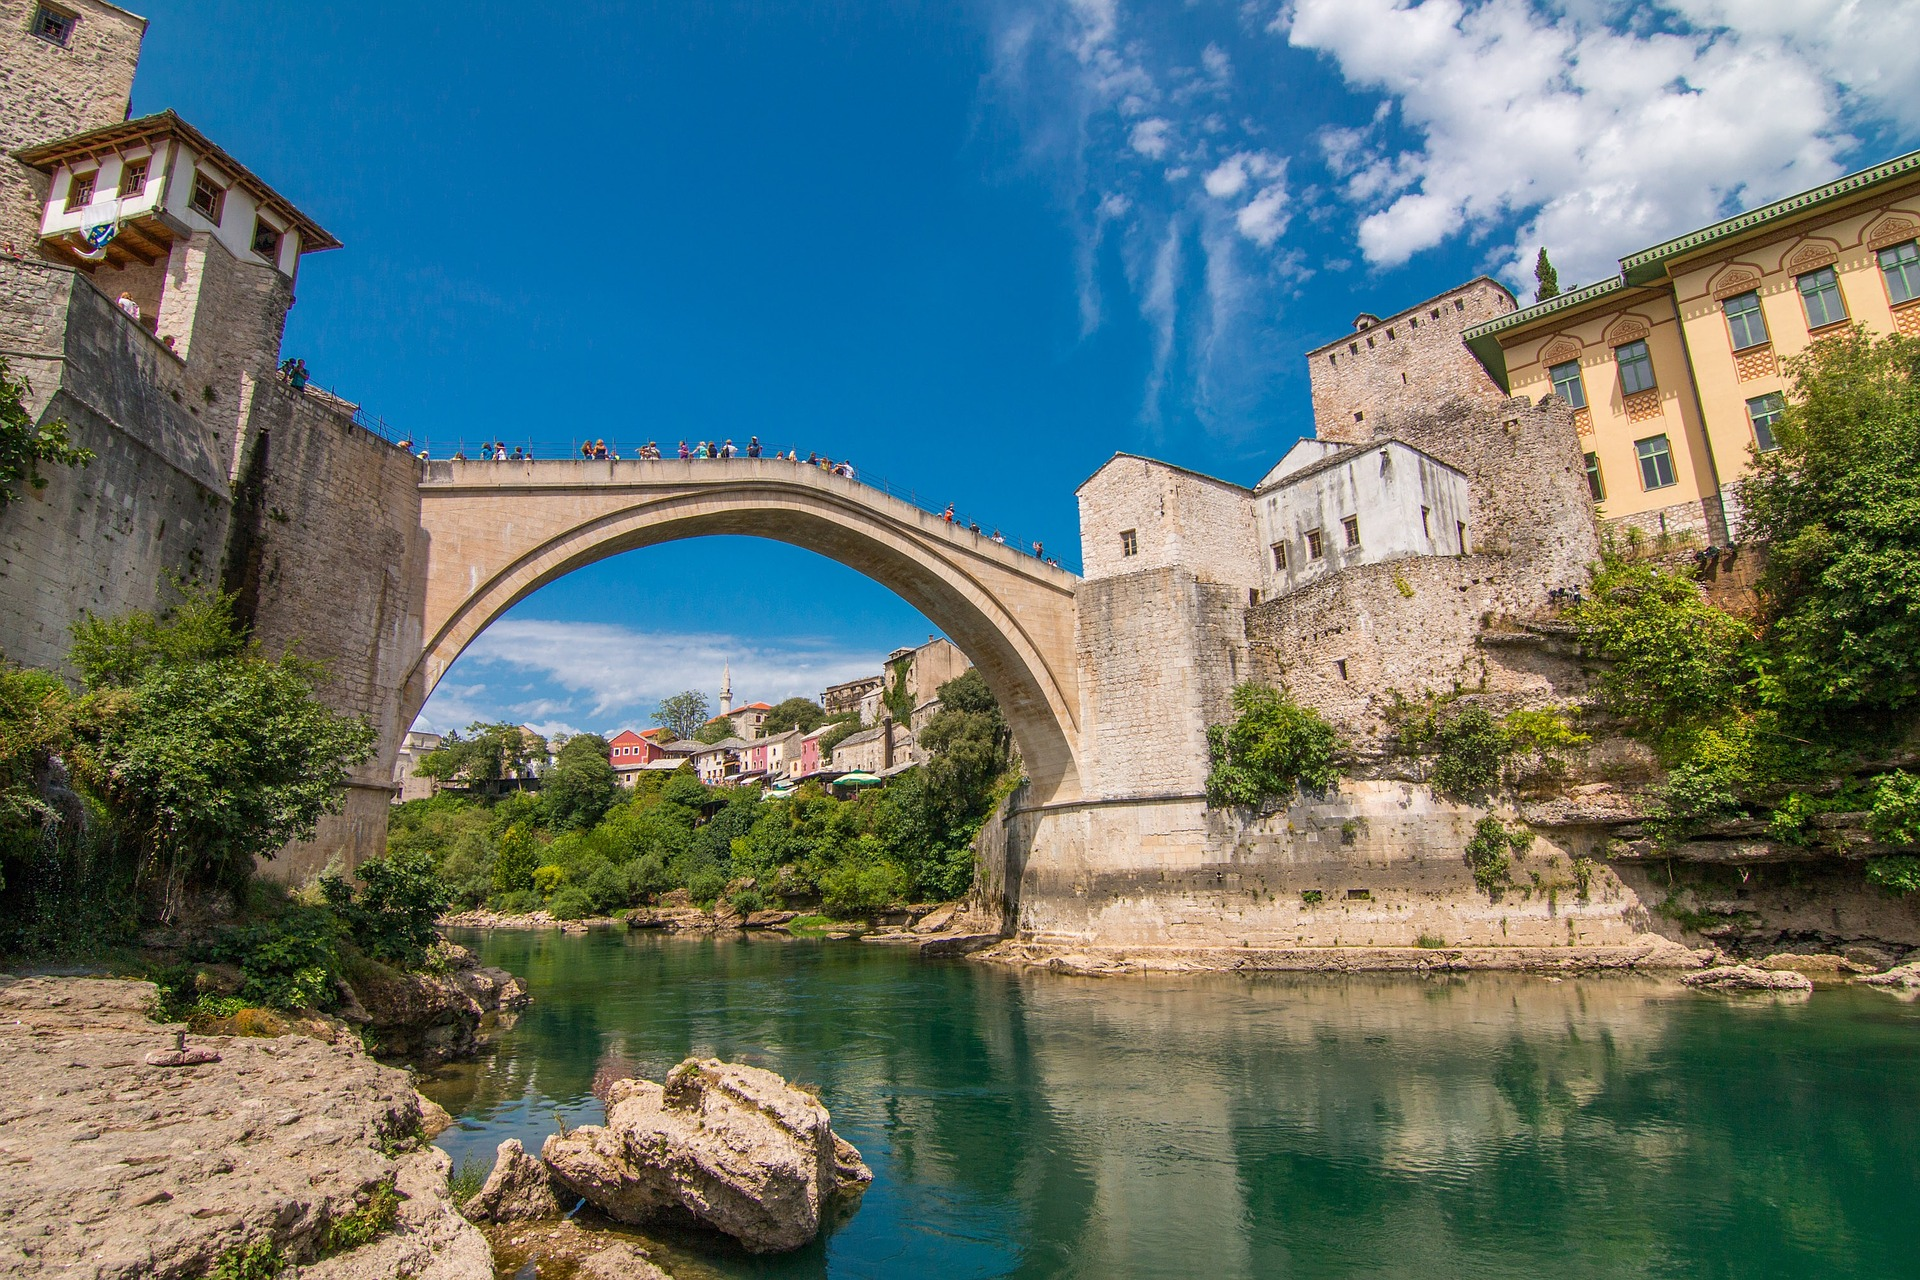 Influencers in Bosnia seen at the Bridge in Mostar